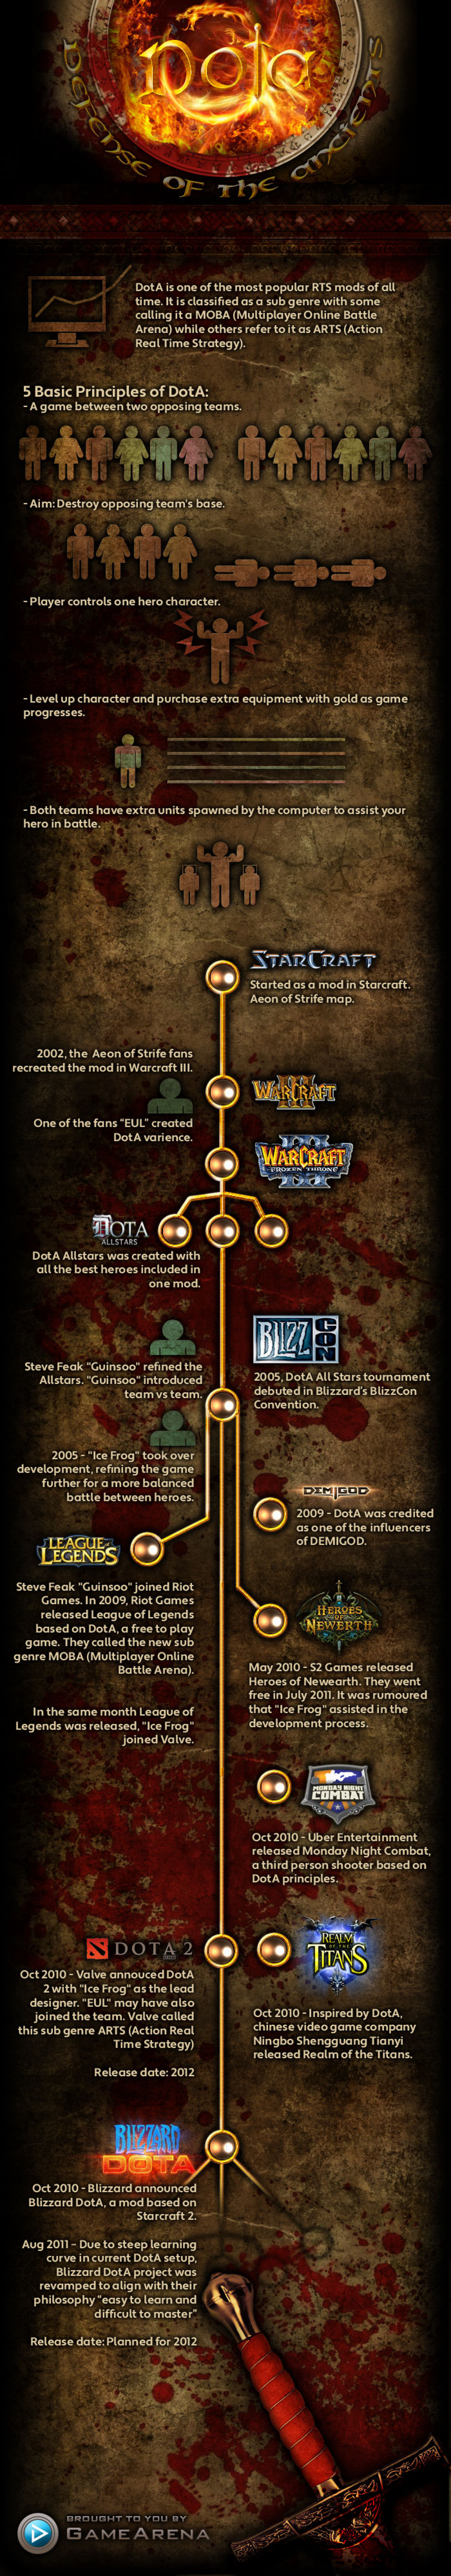 Dota - Defence of the Ancients Infographic